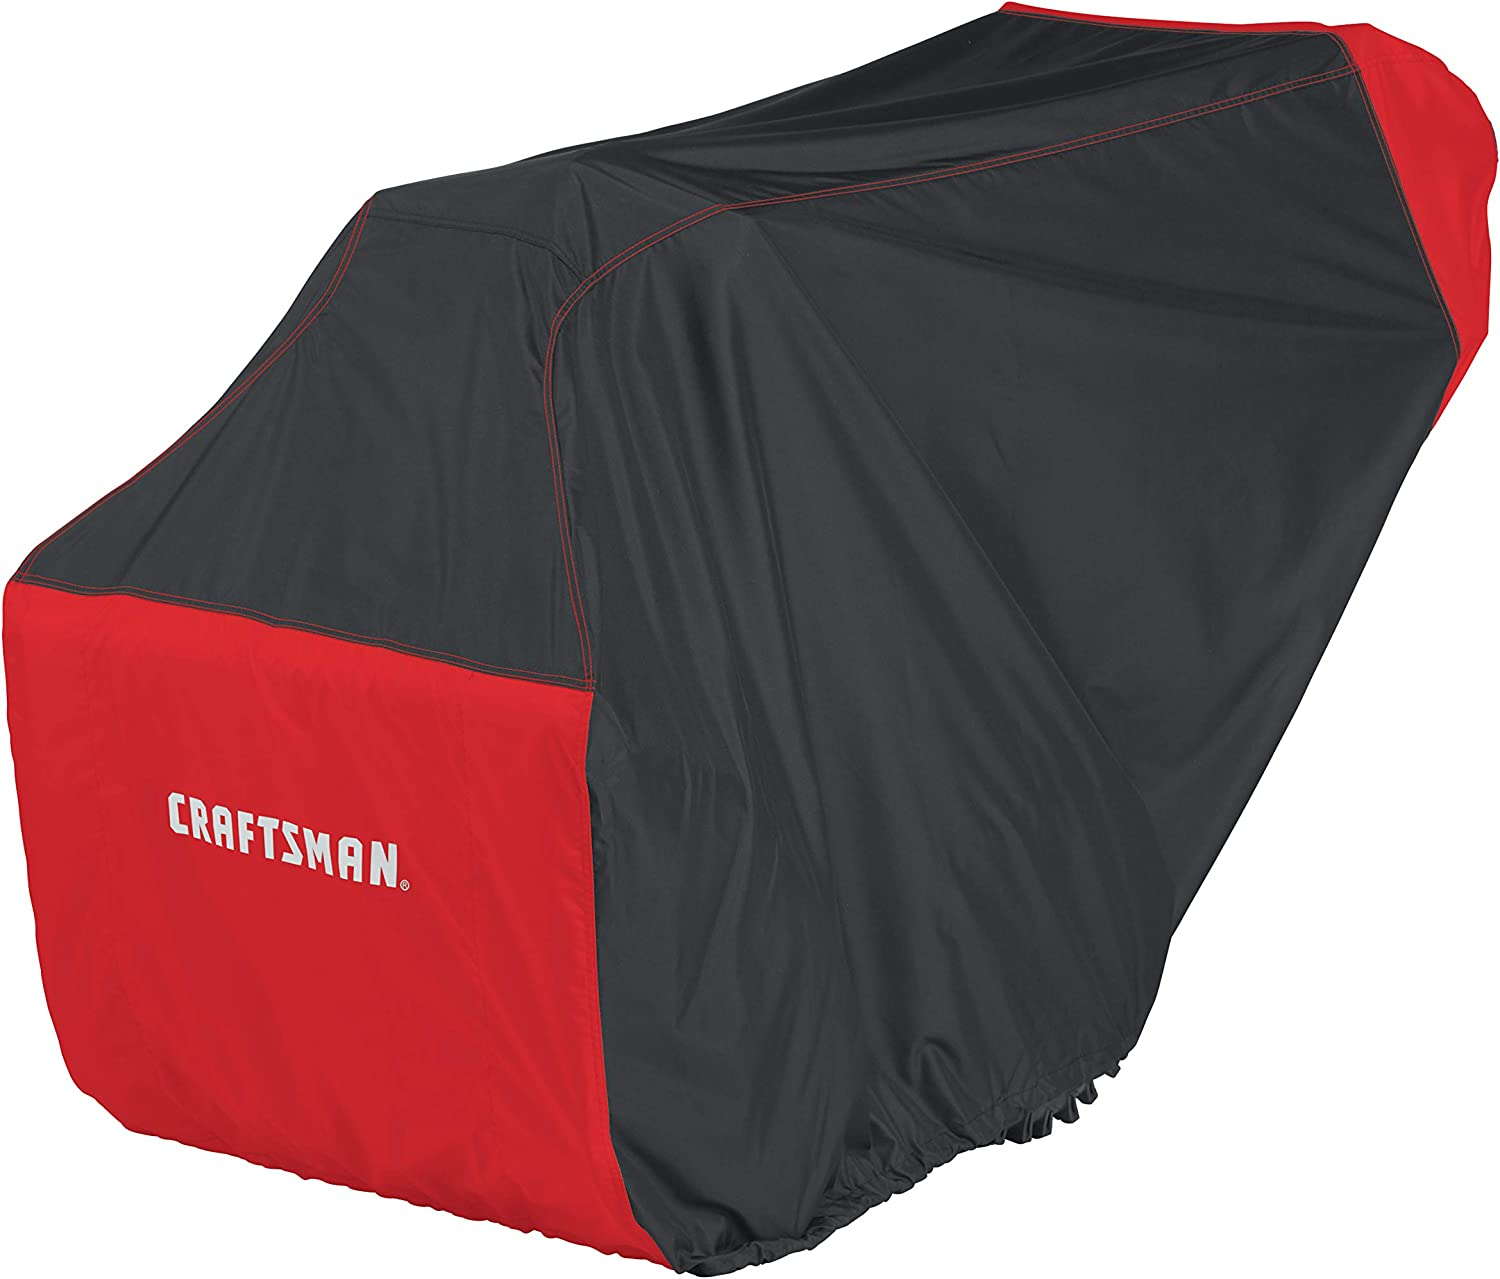 Craftsman CMXGZAA52001501 Single Free shipping on posting reviews Stage Gas Blower Snow Some reservation bl Cover